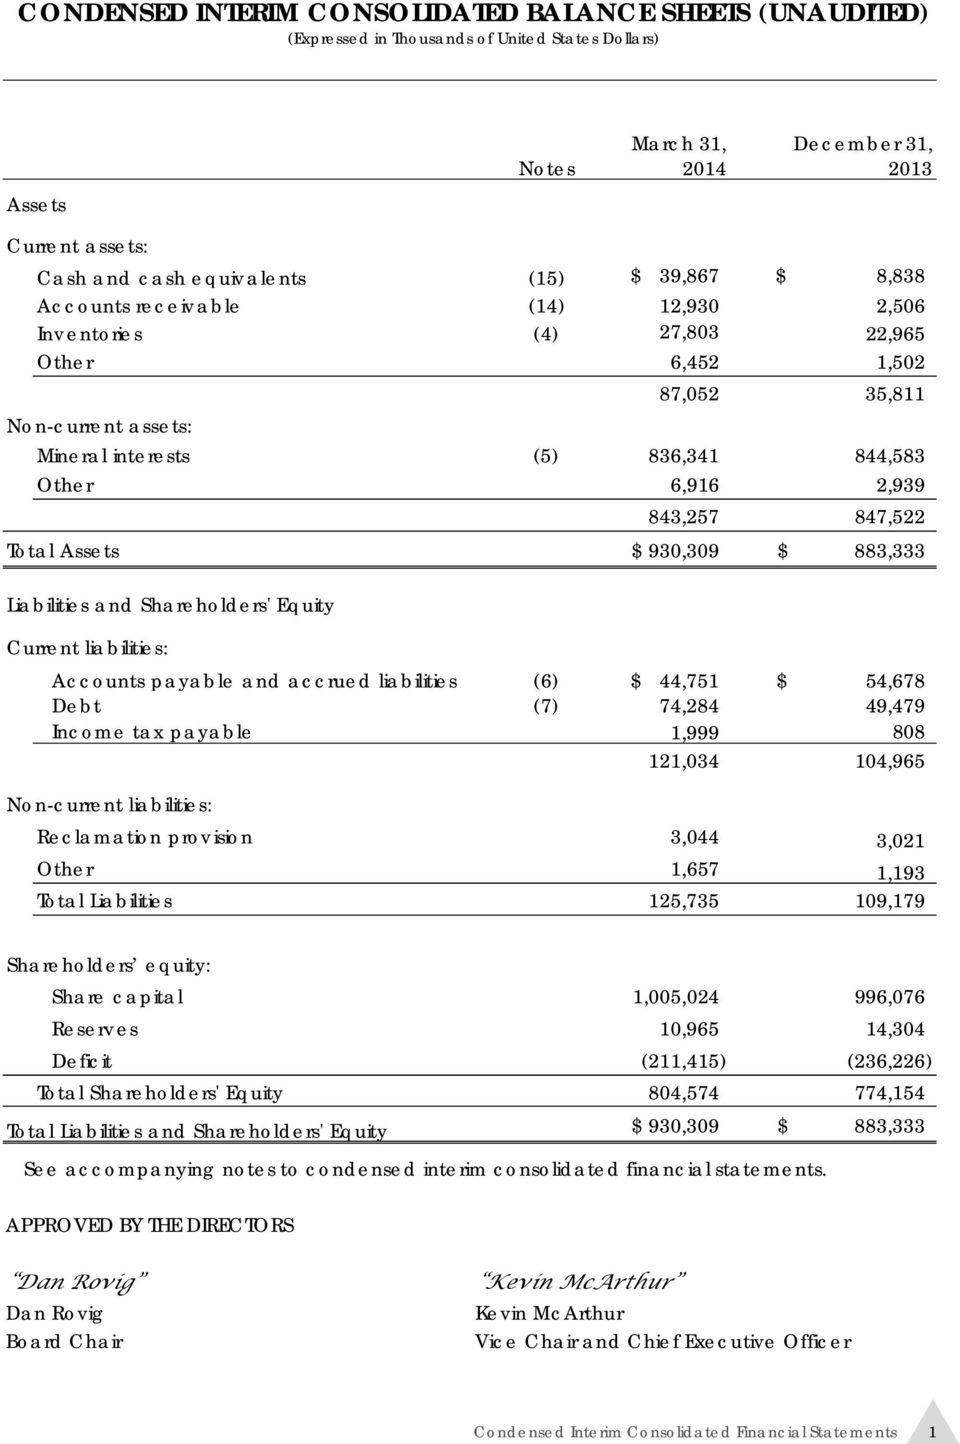 Total Assets $ 930,309 $ 883,333 Liabilities and Shareholders' Equity Current liabilities: Accounts payable and accrued liabilities (6) $ 44,751 $ 54,678 Debt (7) 74,284 49,479 Income tax payable